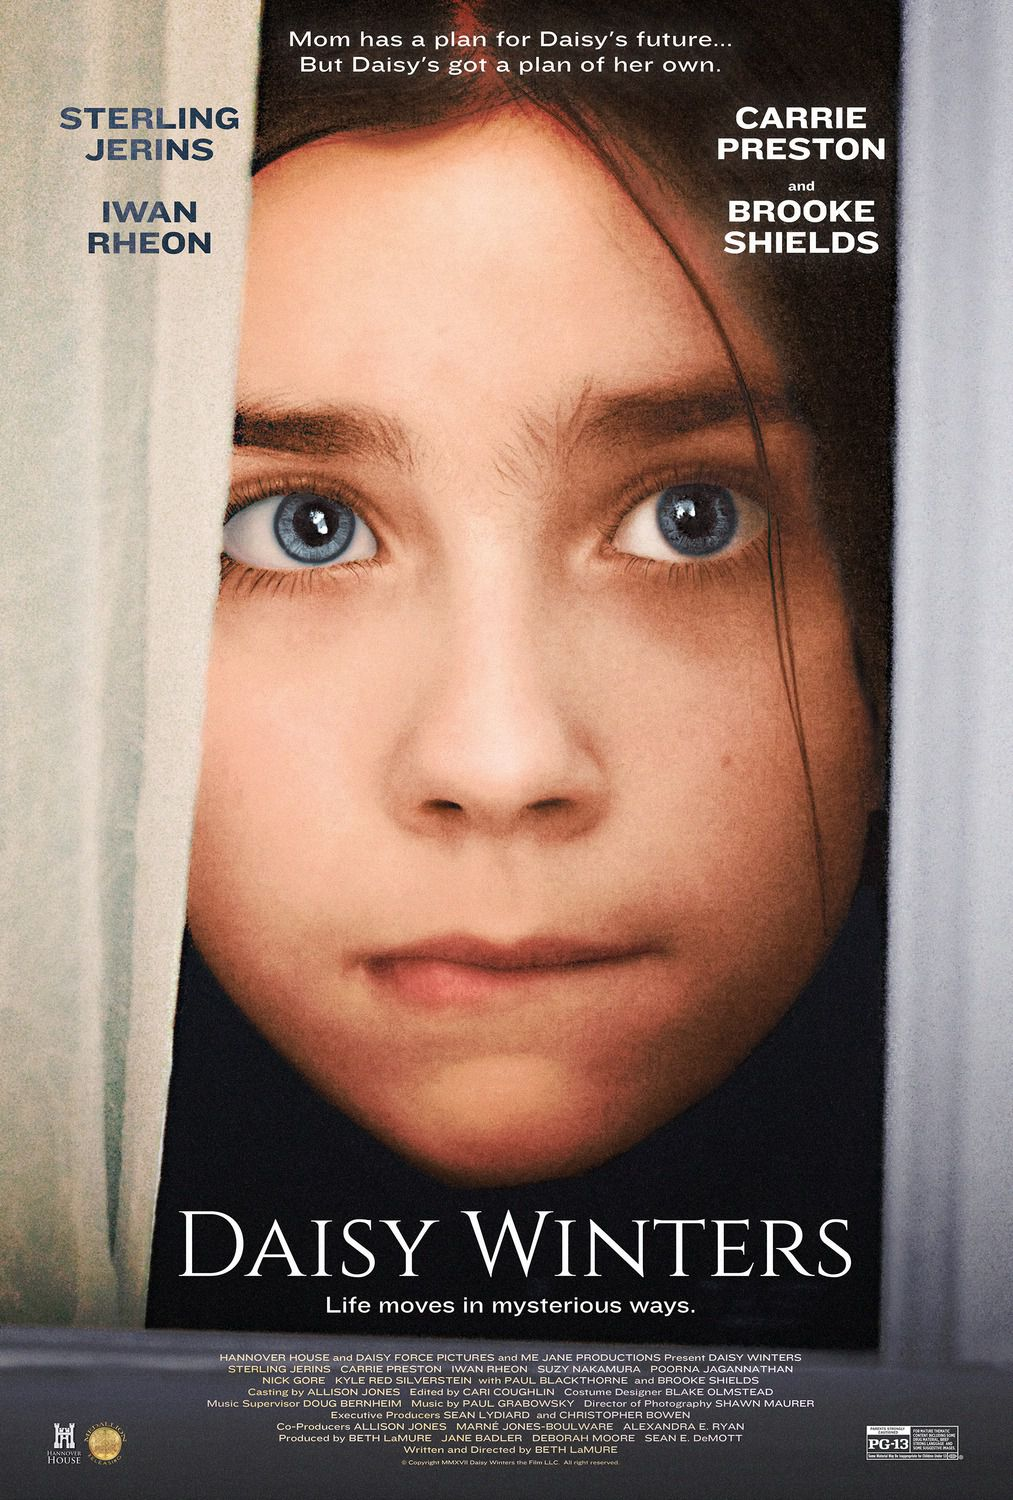 Daisy Winters - Life moves in mysterious ways - Mom has a plan for Daisy's future, but Daisy's got a plan of her own - Sterling Jerins - Carrie Preston - Iwan Rheon - Brooke Shields - film poster